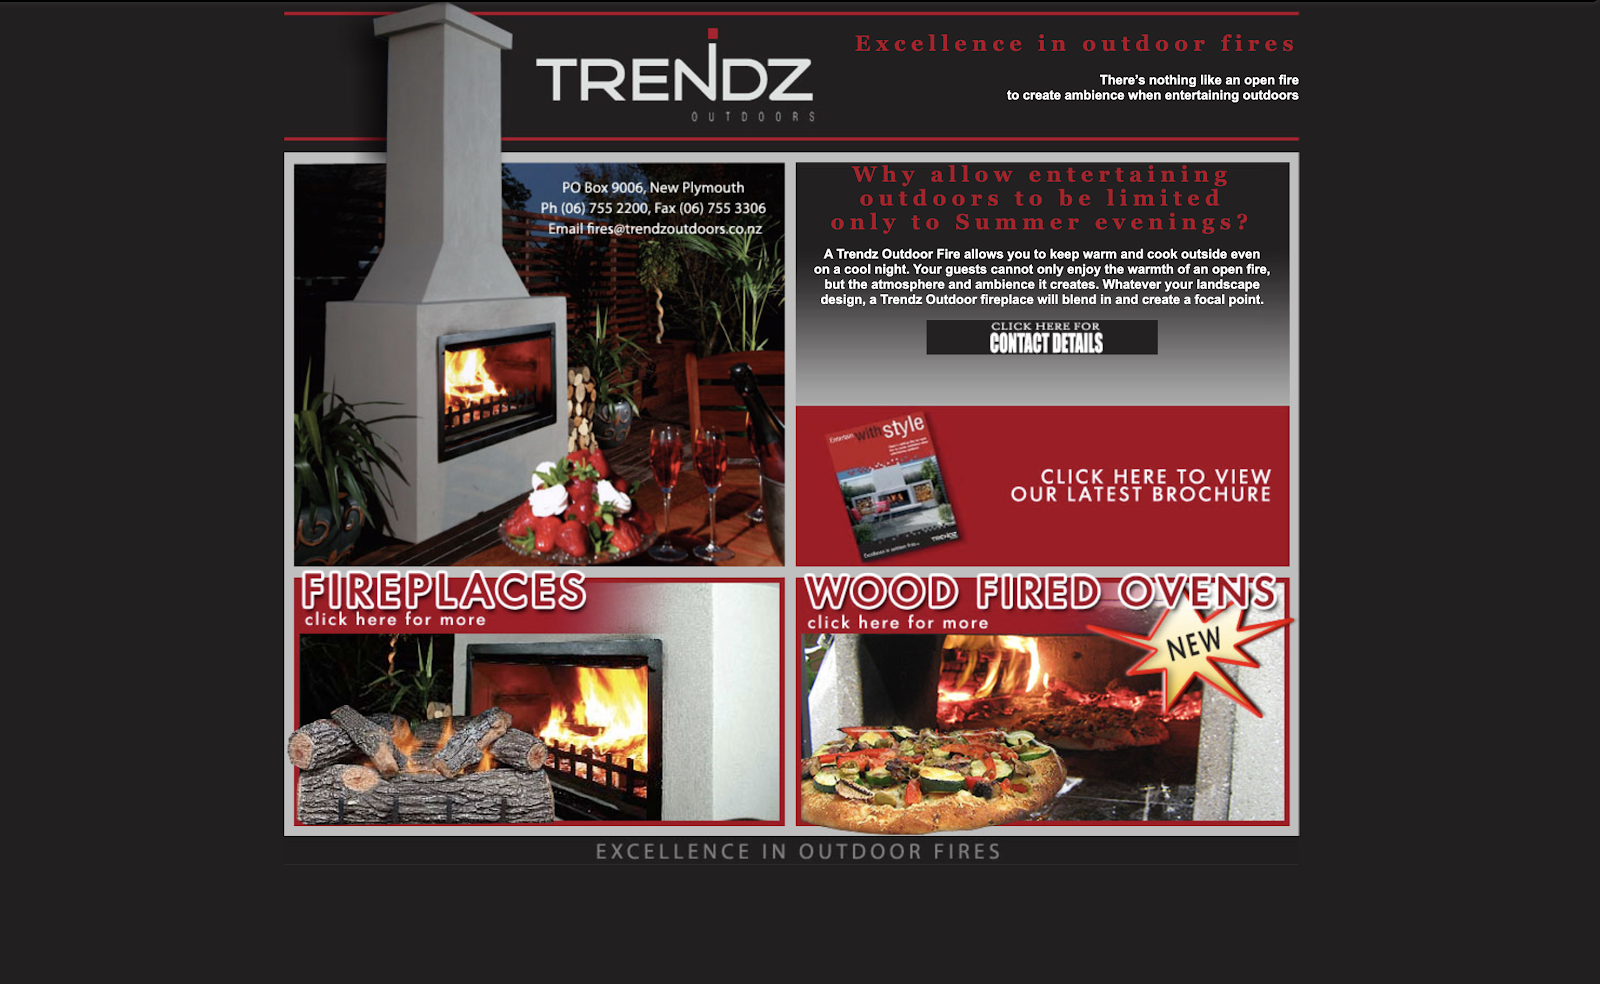 The Trendz website in 2009